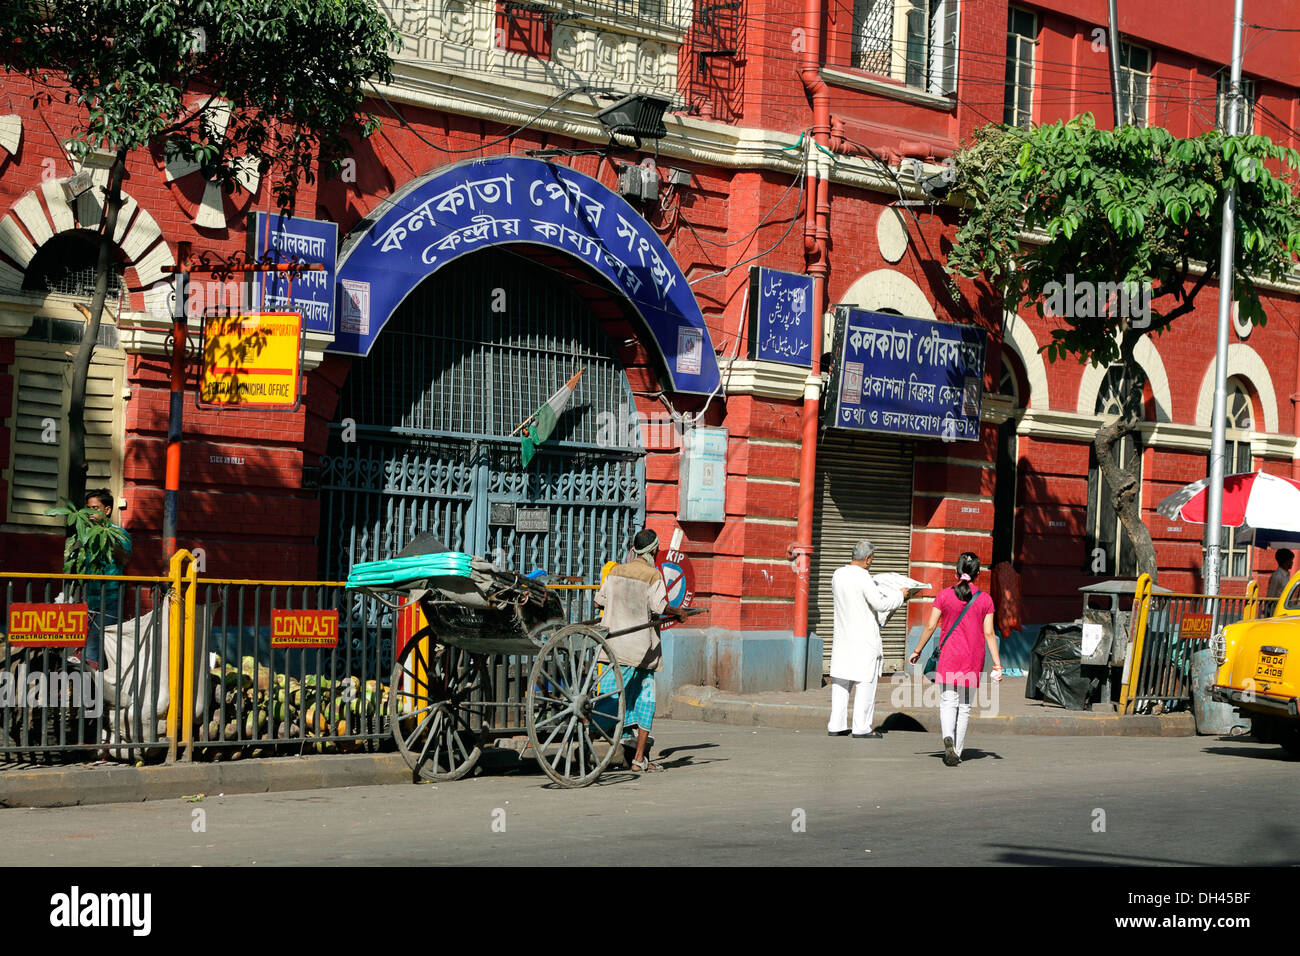 municipal corporation Define municipal corporation municipal corporation synonyms, municipal corporation pronunciation, municipal corporation translation, english dictionary definition of municipal corporation n a city, town, or other district that operates under a corporate charter granted by the state a municipality.